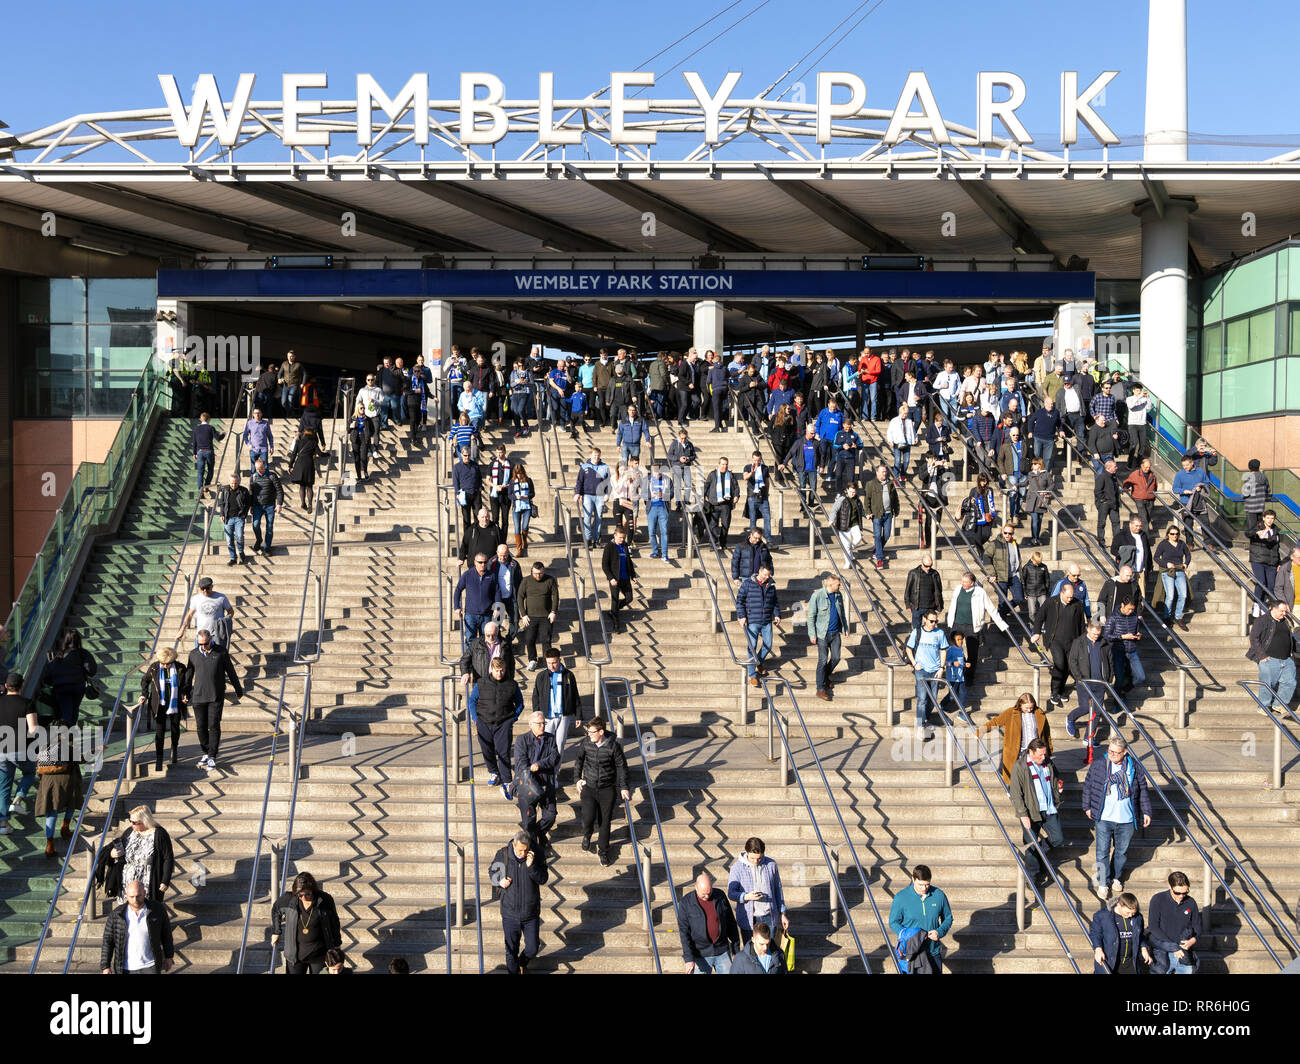 24 Feb 2019 - London, England. People arrived at Wembley Park station walking towards the stadium to watch Carabao Cup Finals. - Stock Image